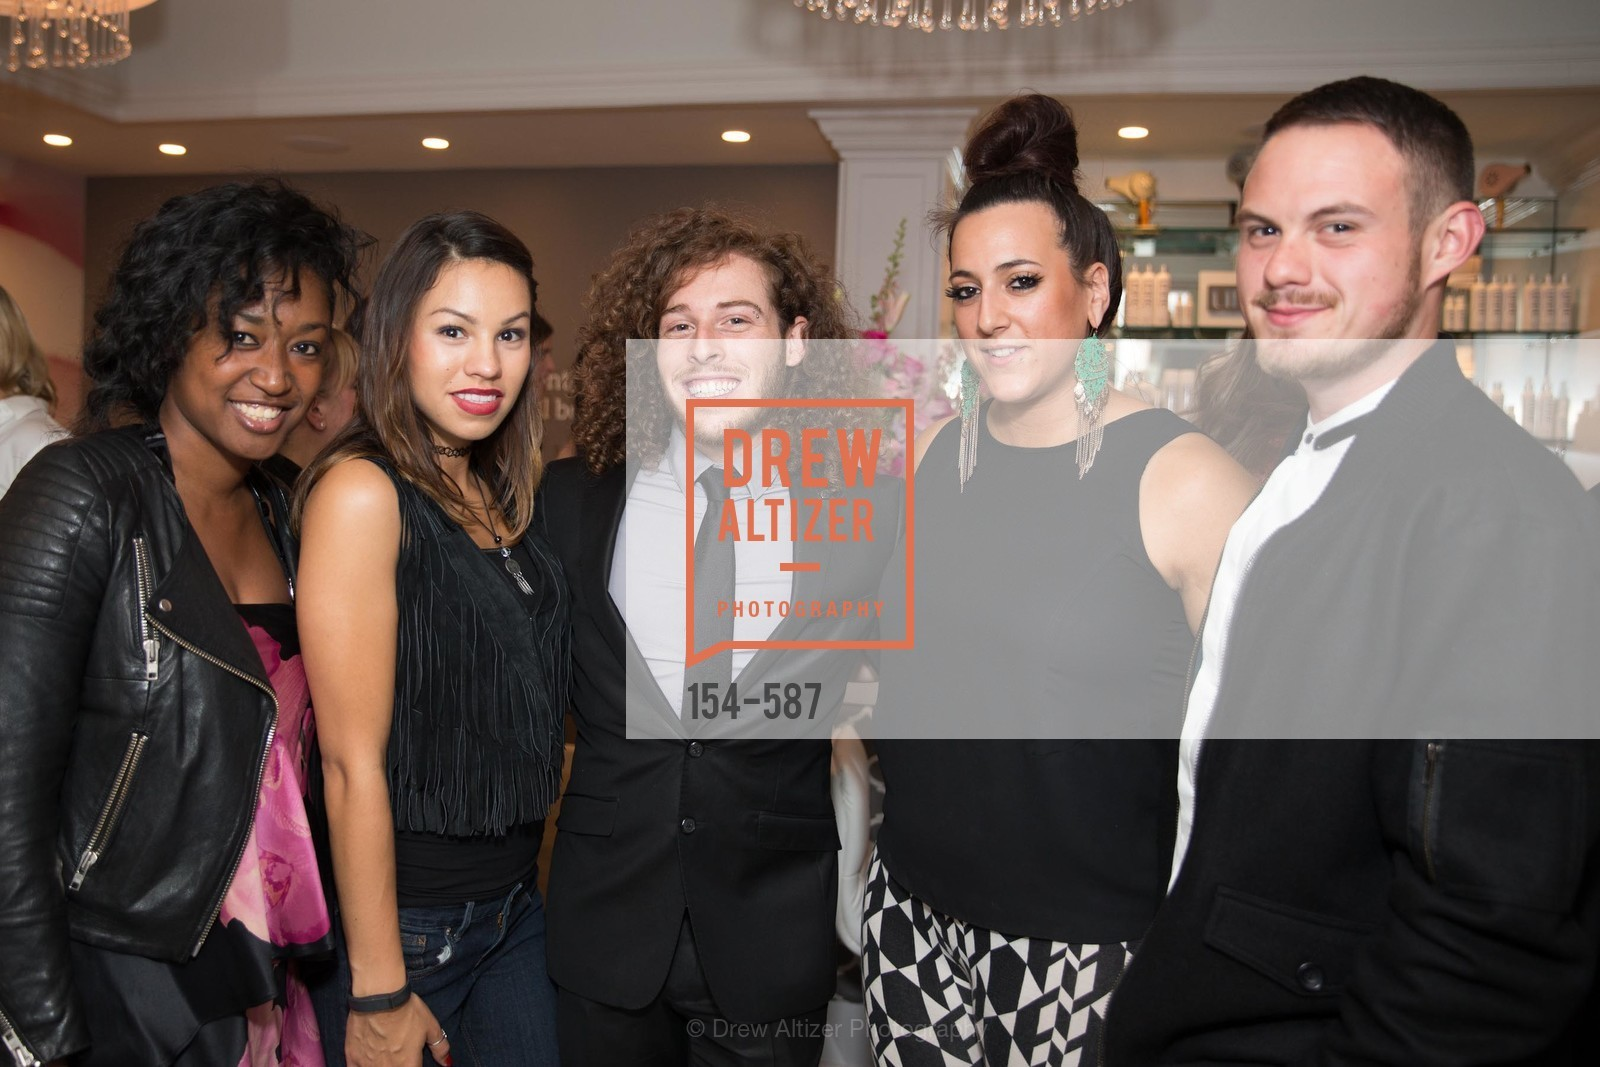 Jodi Rose, Ruby Gallardo, Aaron Gluck, Brttany Paz, Anthony Matcenas, BLOOM BLOW DRY BAR Grand Opening Party, US, October 1st, 2014,Drew Altizer, Drew Altizer Photography, full-service agency, private events, San Francisco photographer, photographer california